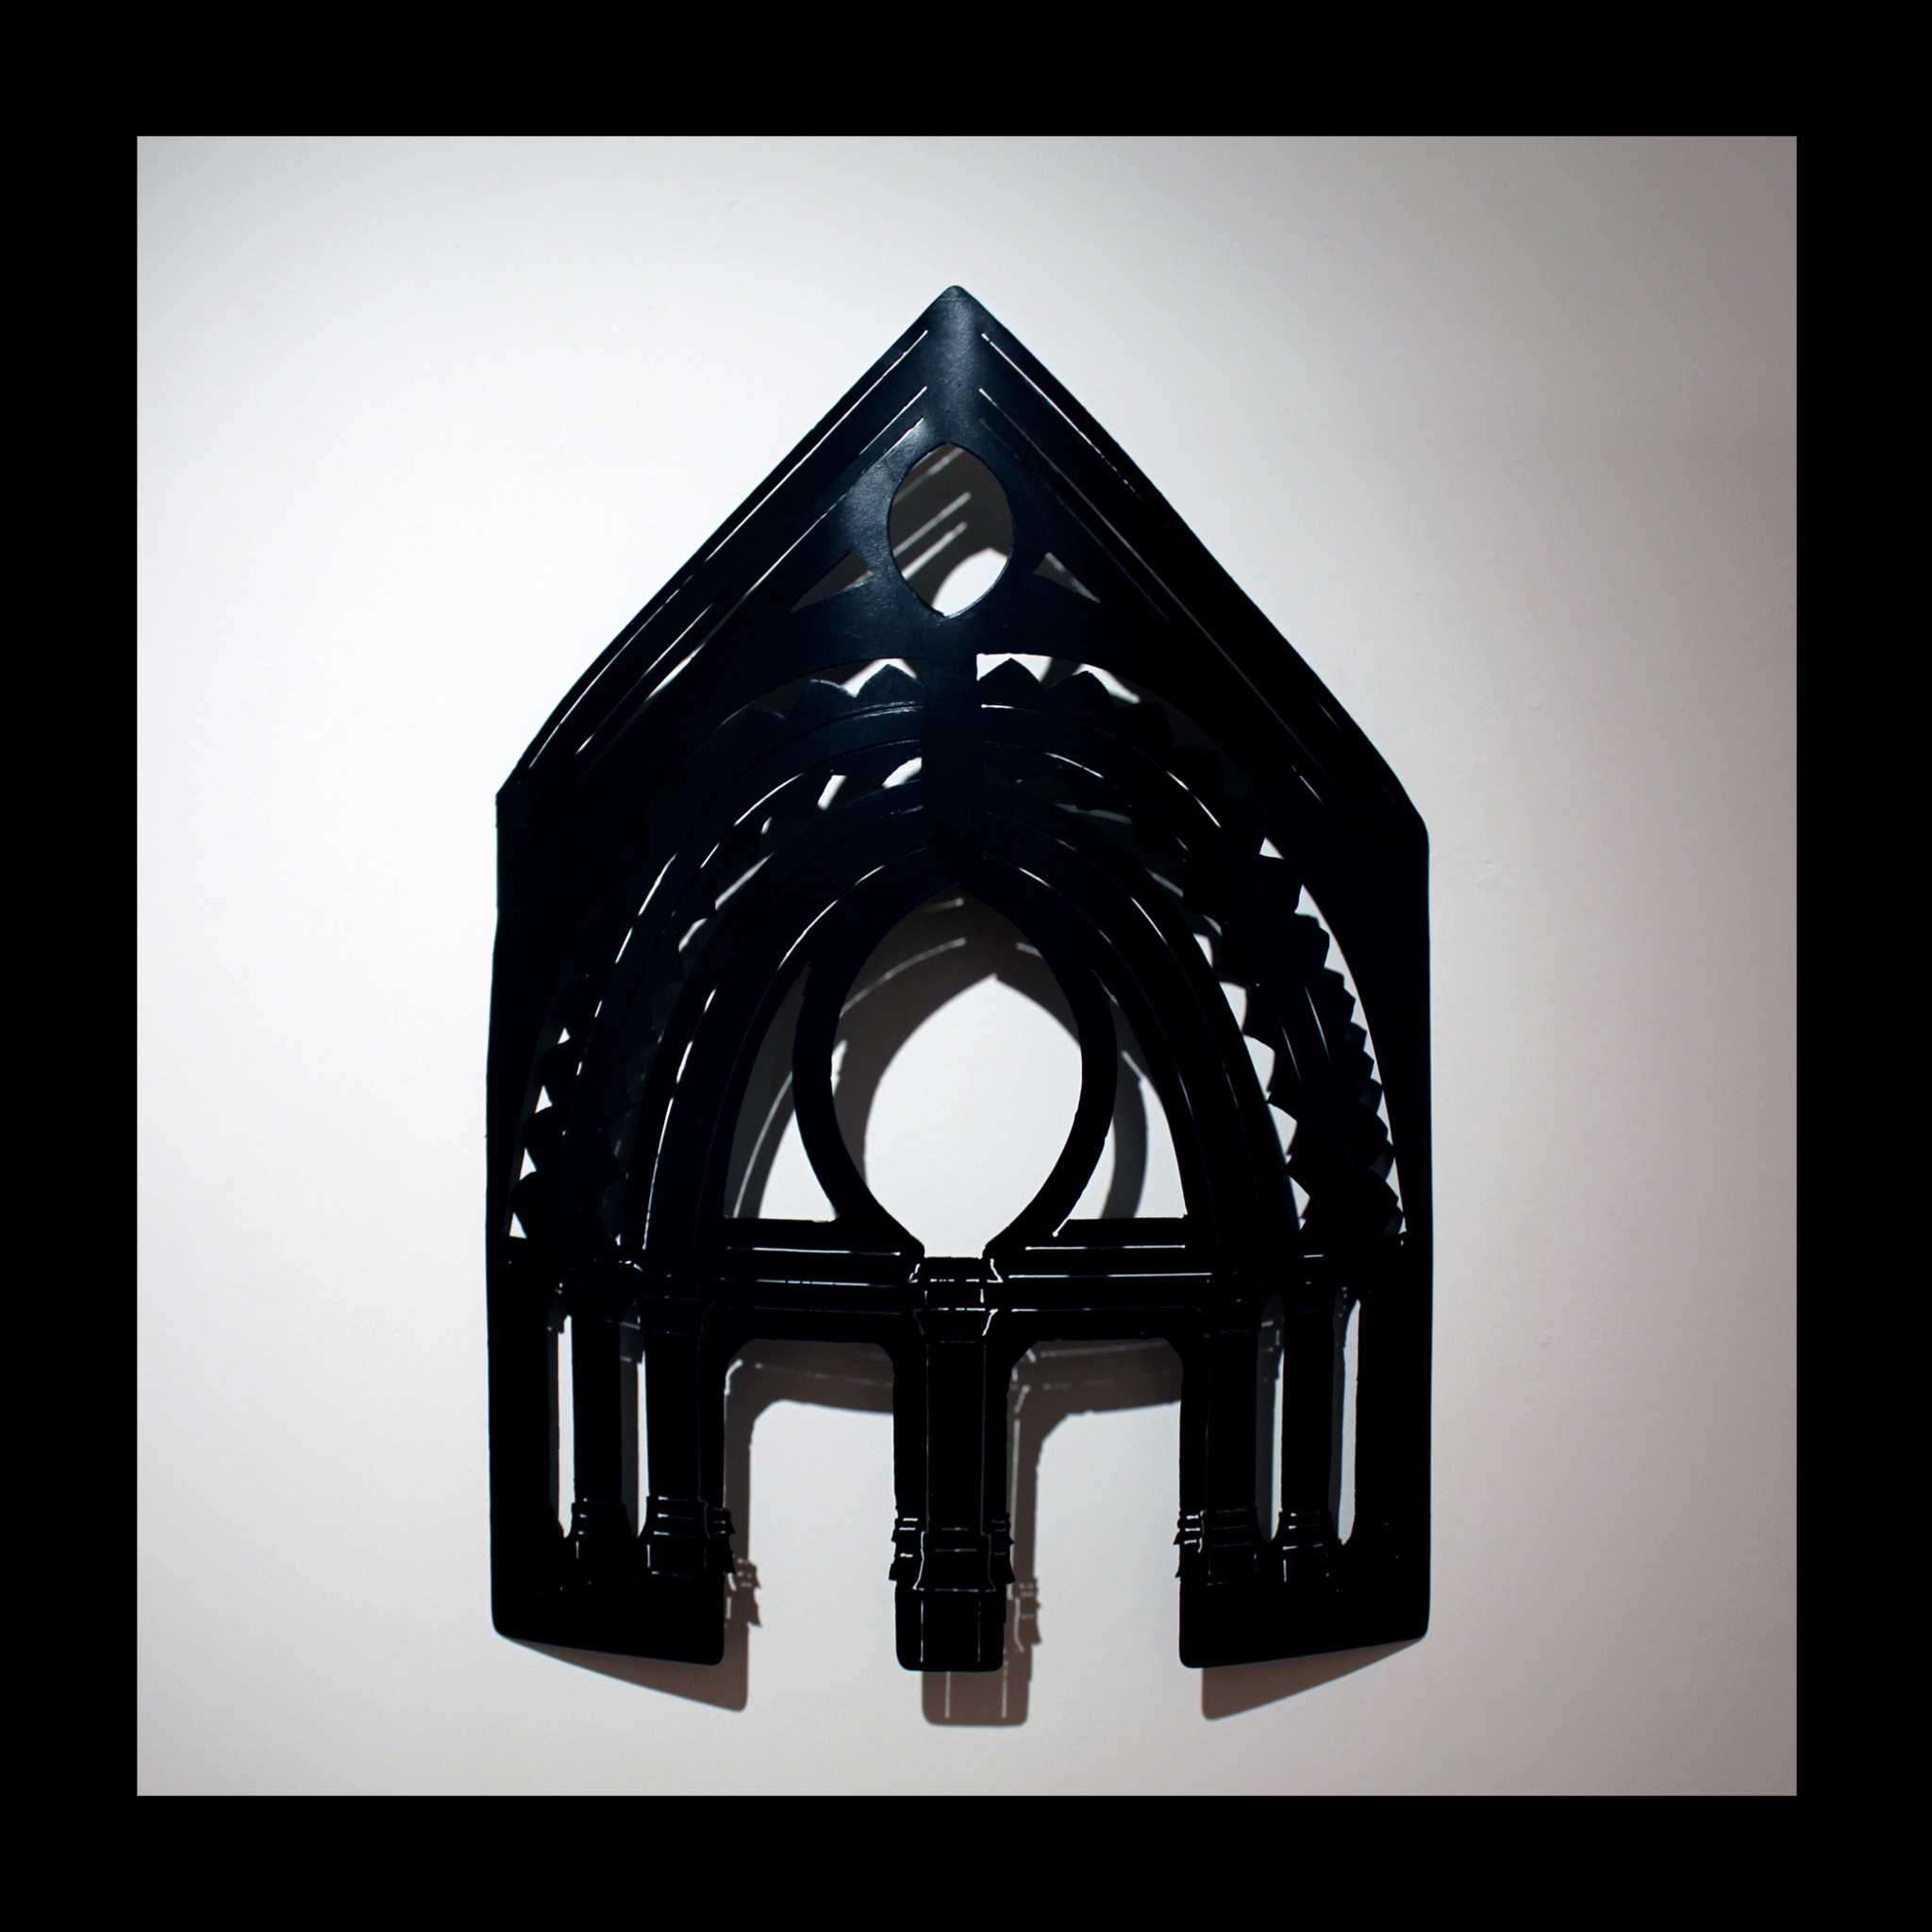 Steel wall hanging by Aisling Millar, St. Pete's Tympanum.